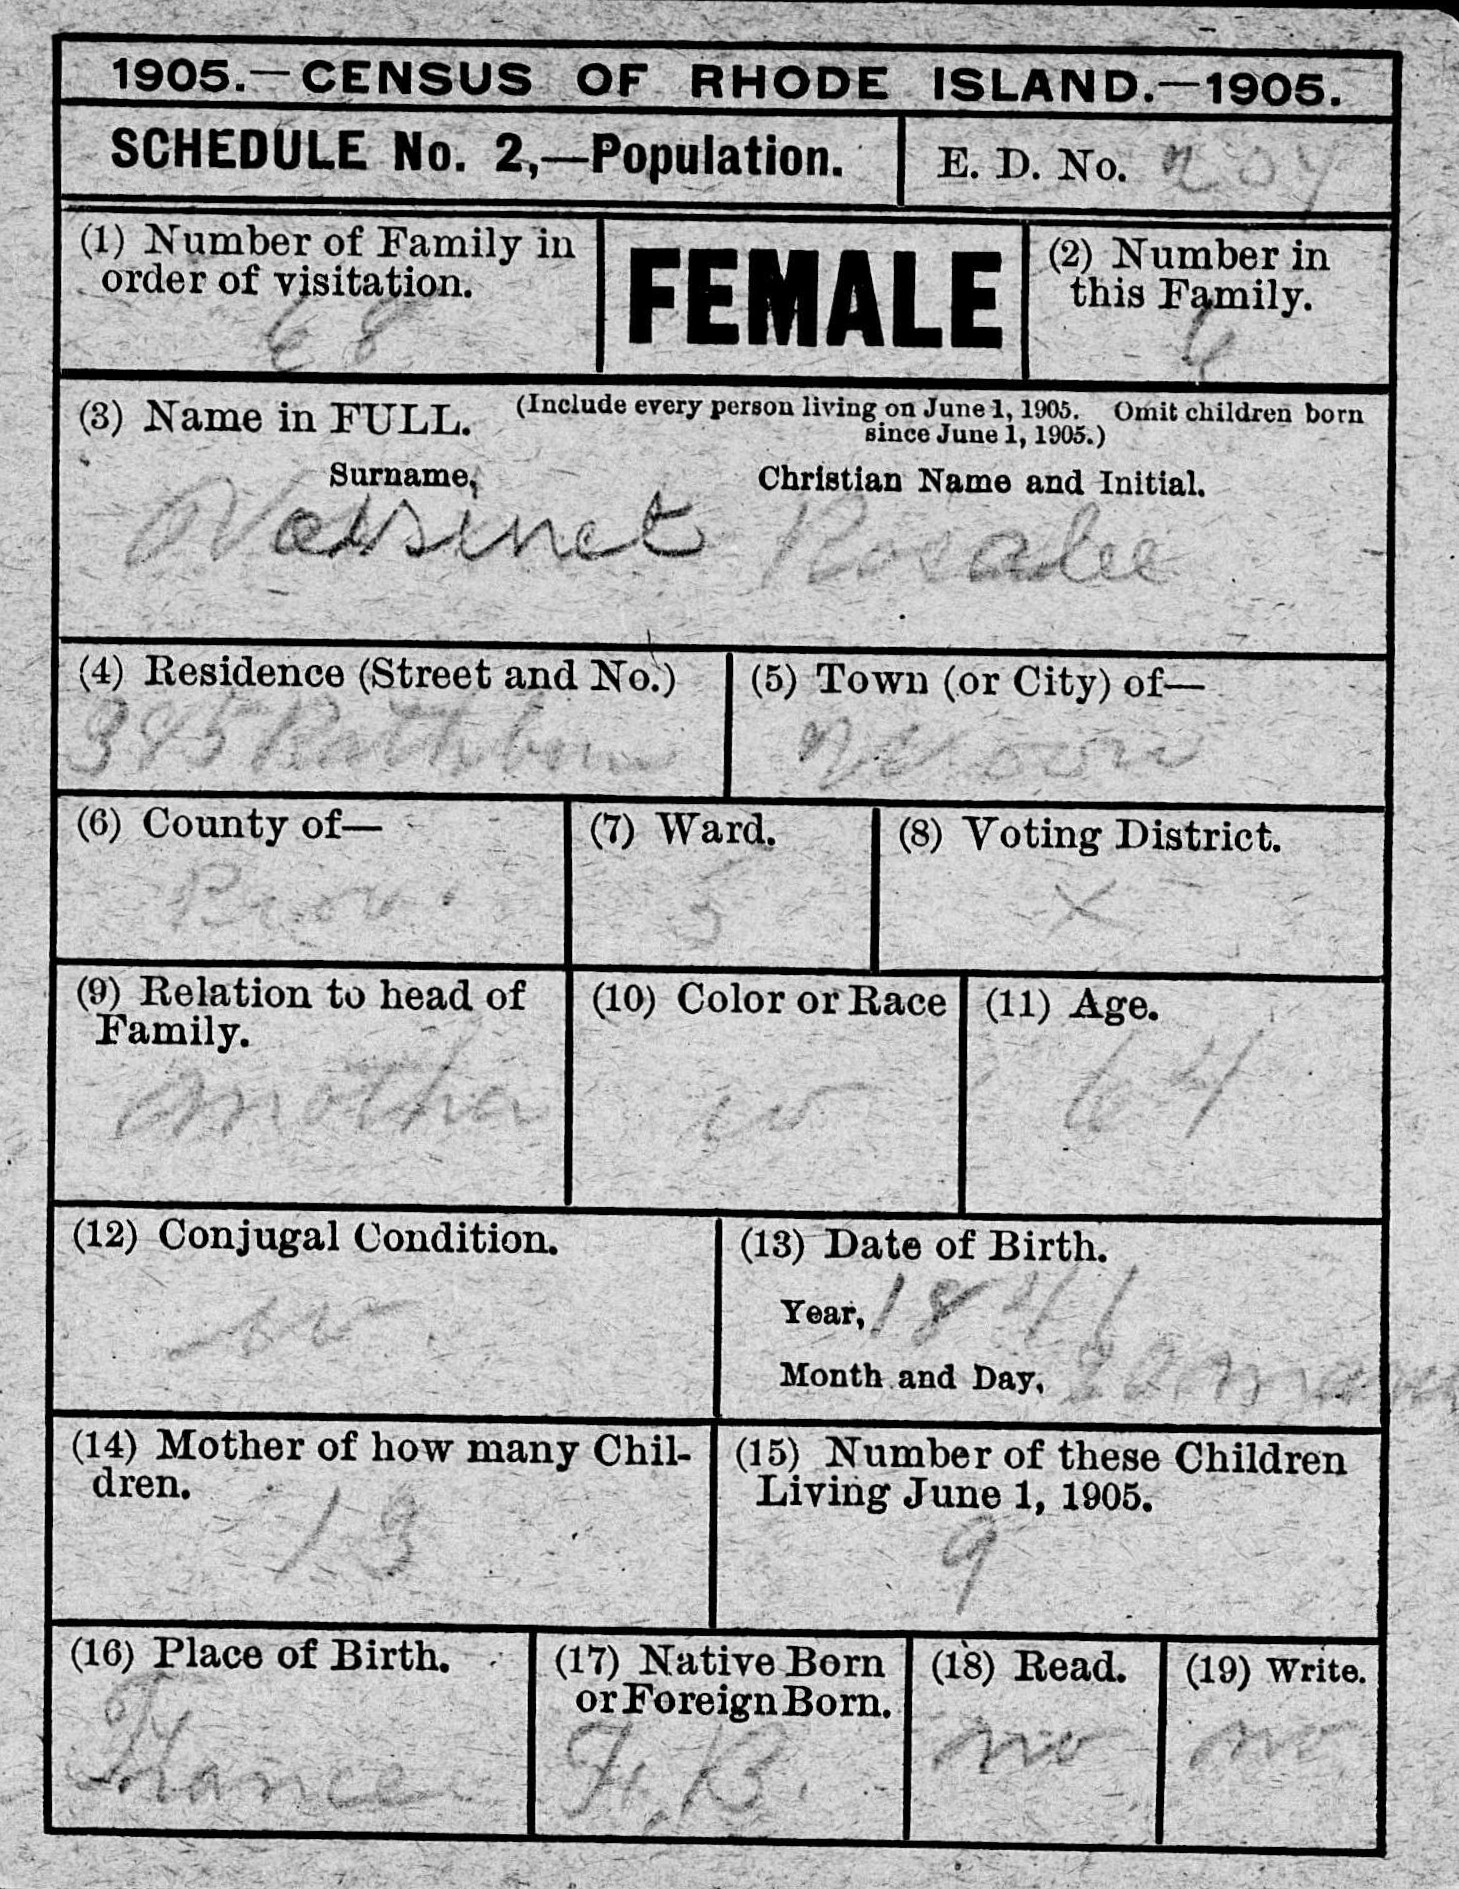 Voisinet the spiraling chains schroeder tumbush family trees 1905 rhode island state census rosalie widowed 1betcityfo Choice Image